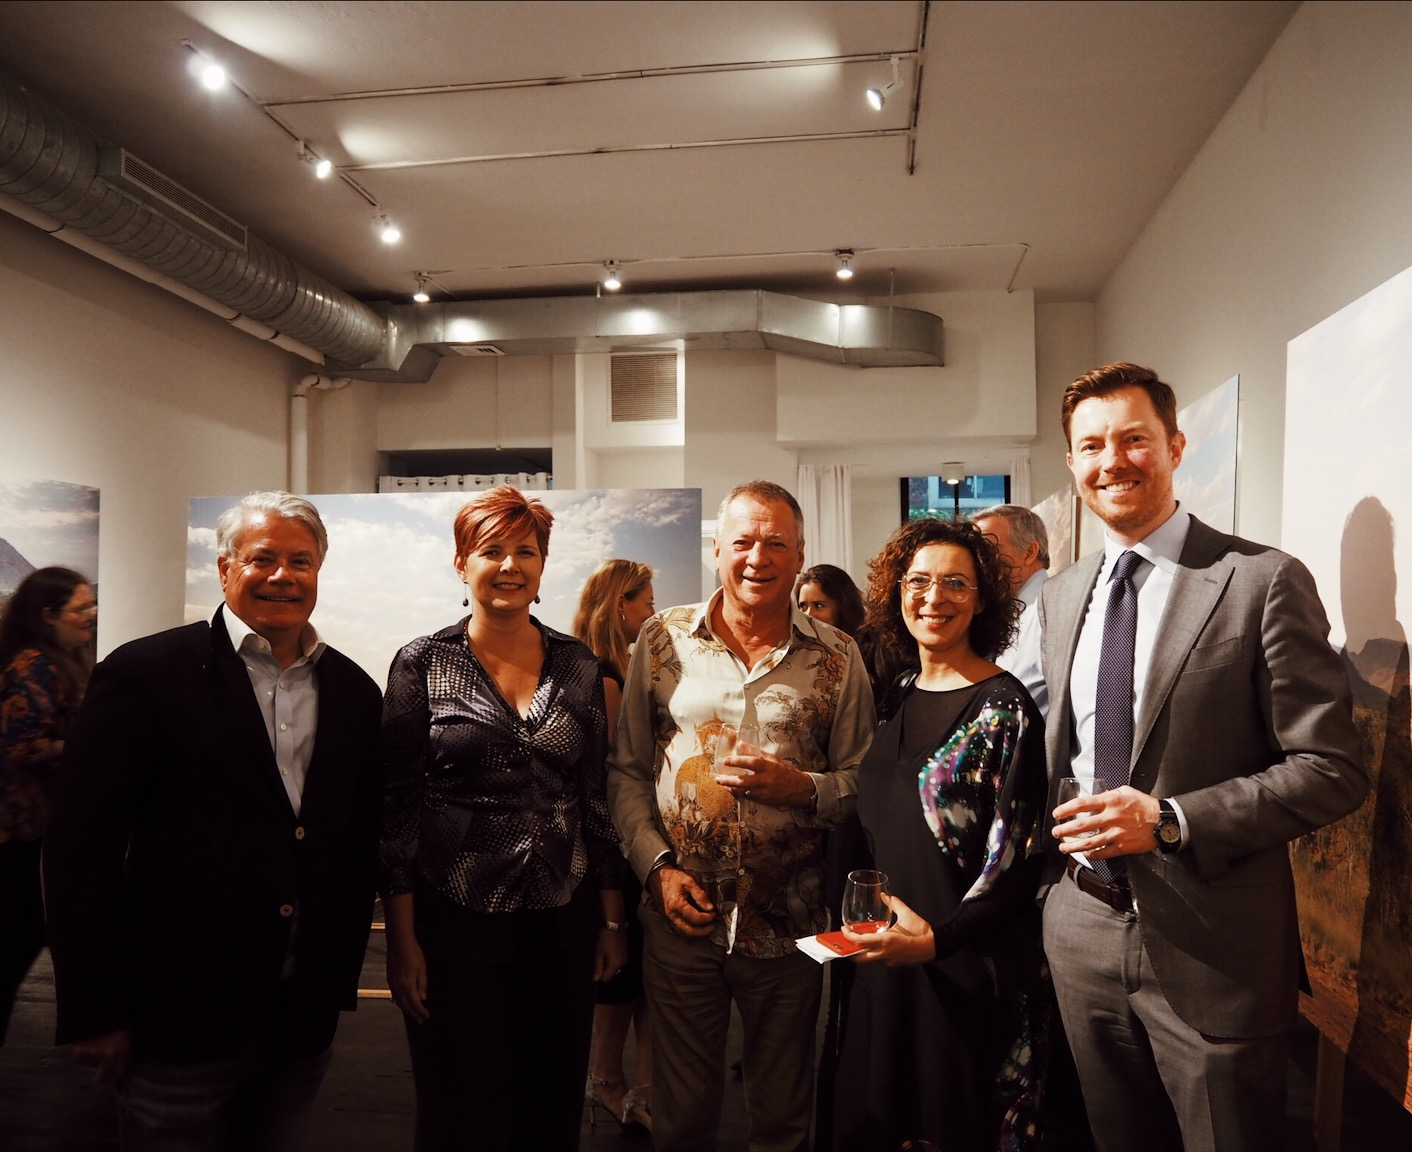 Alastair Walton, Consul-General of Australia, New York; Maria Jowett-Horth; Anthony Horth, Artist; Serafina Maiorano, Global CEO, Advance; Ian Taylor, Goldman Sachs